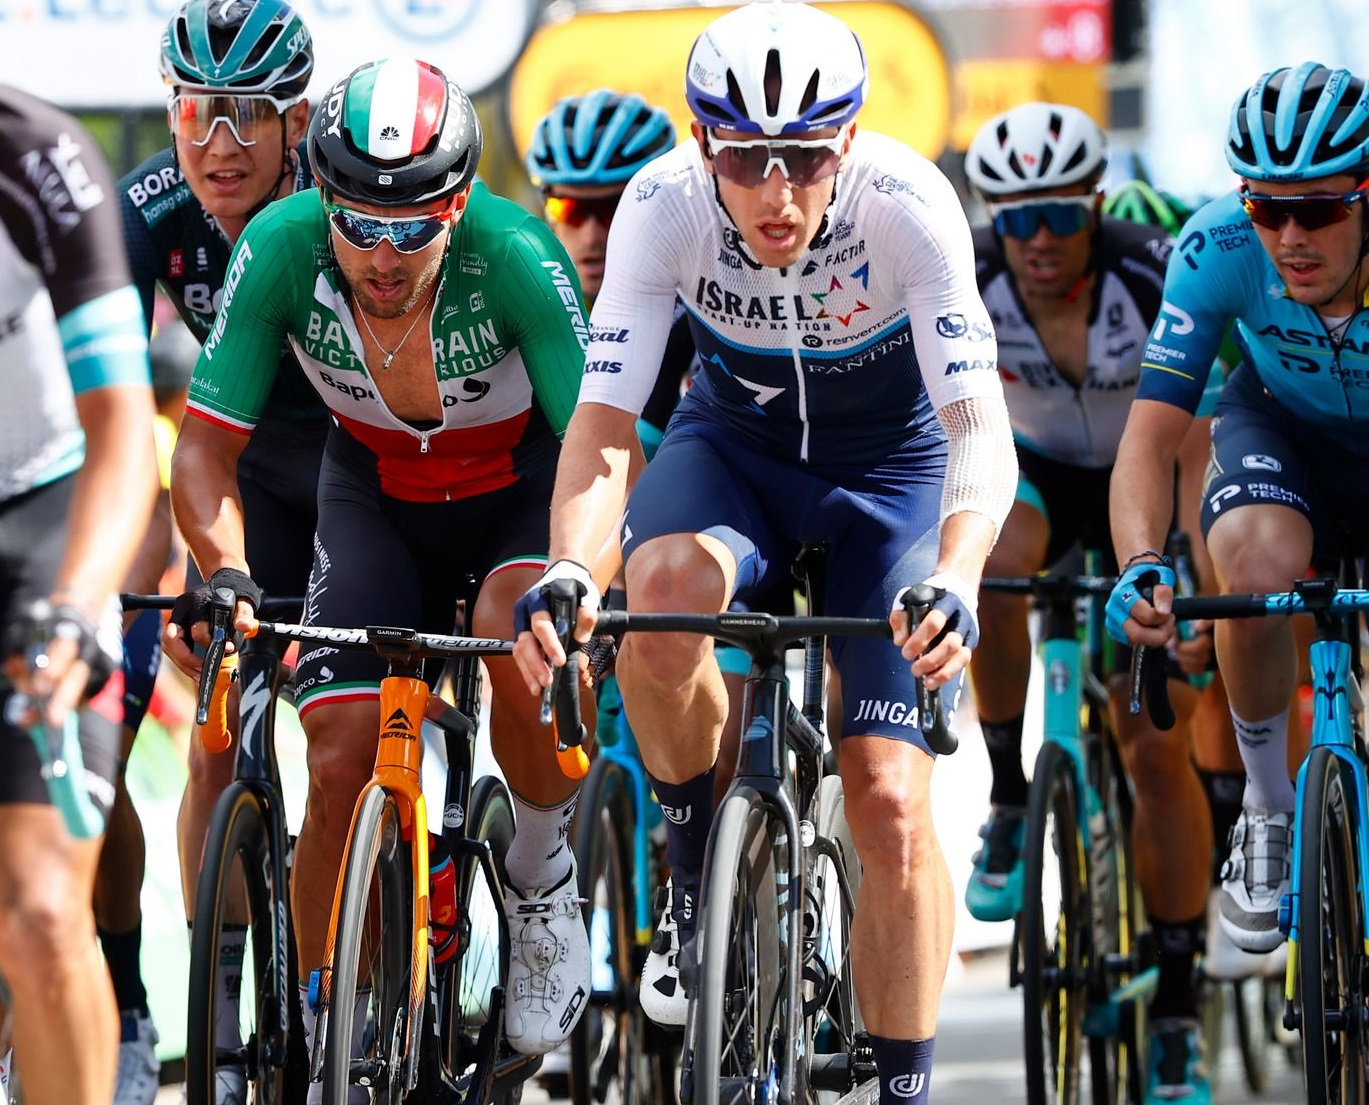 Woods bounces back with a strong performance on stage 2 of Tour de France